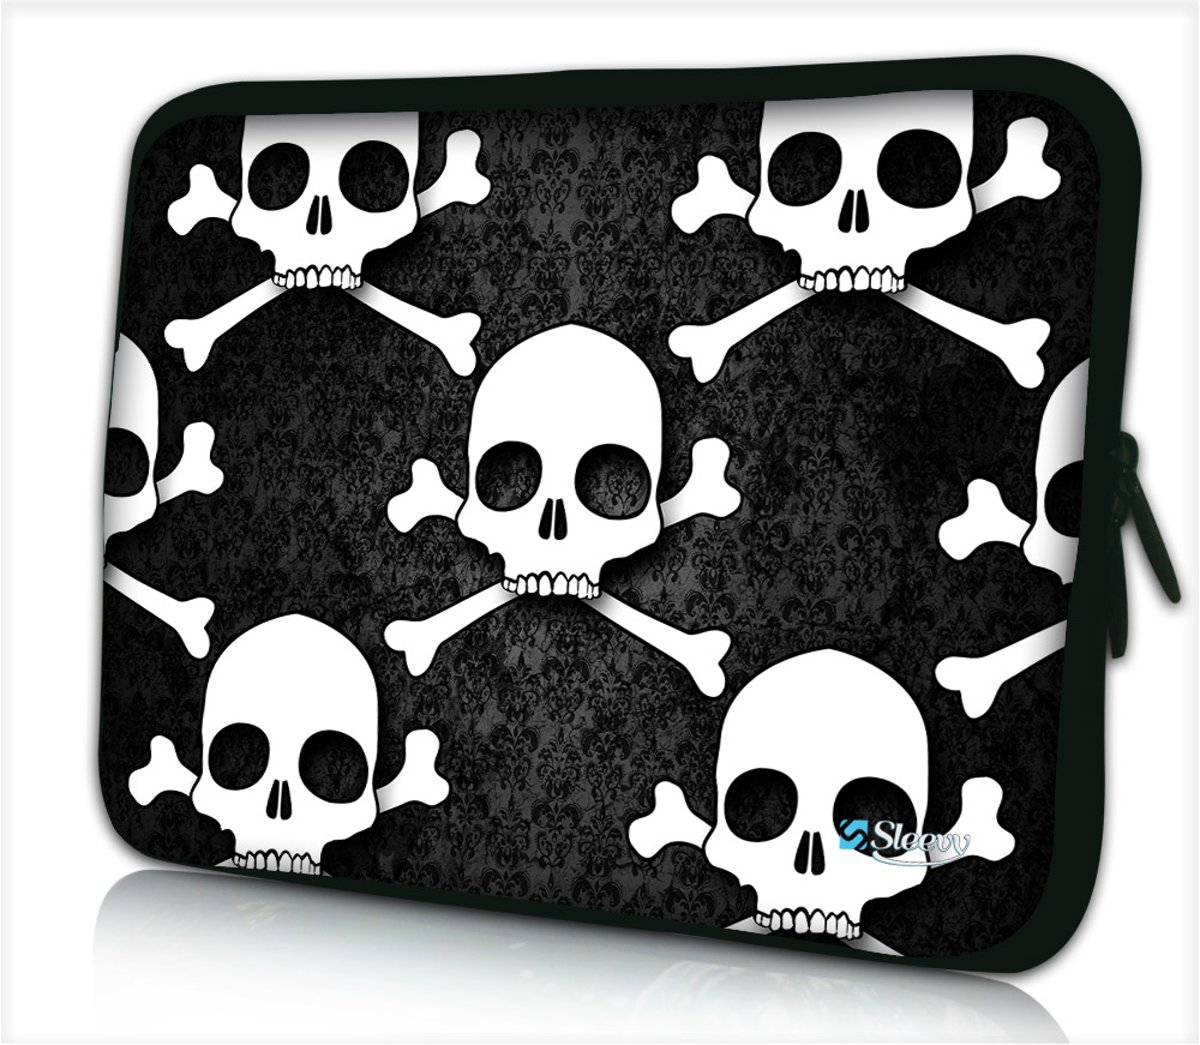 Laptophoes 14 inch doodskoppen - Sleevy - Laptop sleeve - Macbook hoes - beschermhoes